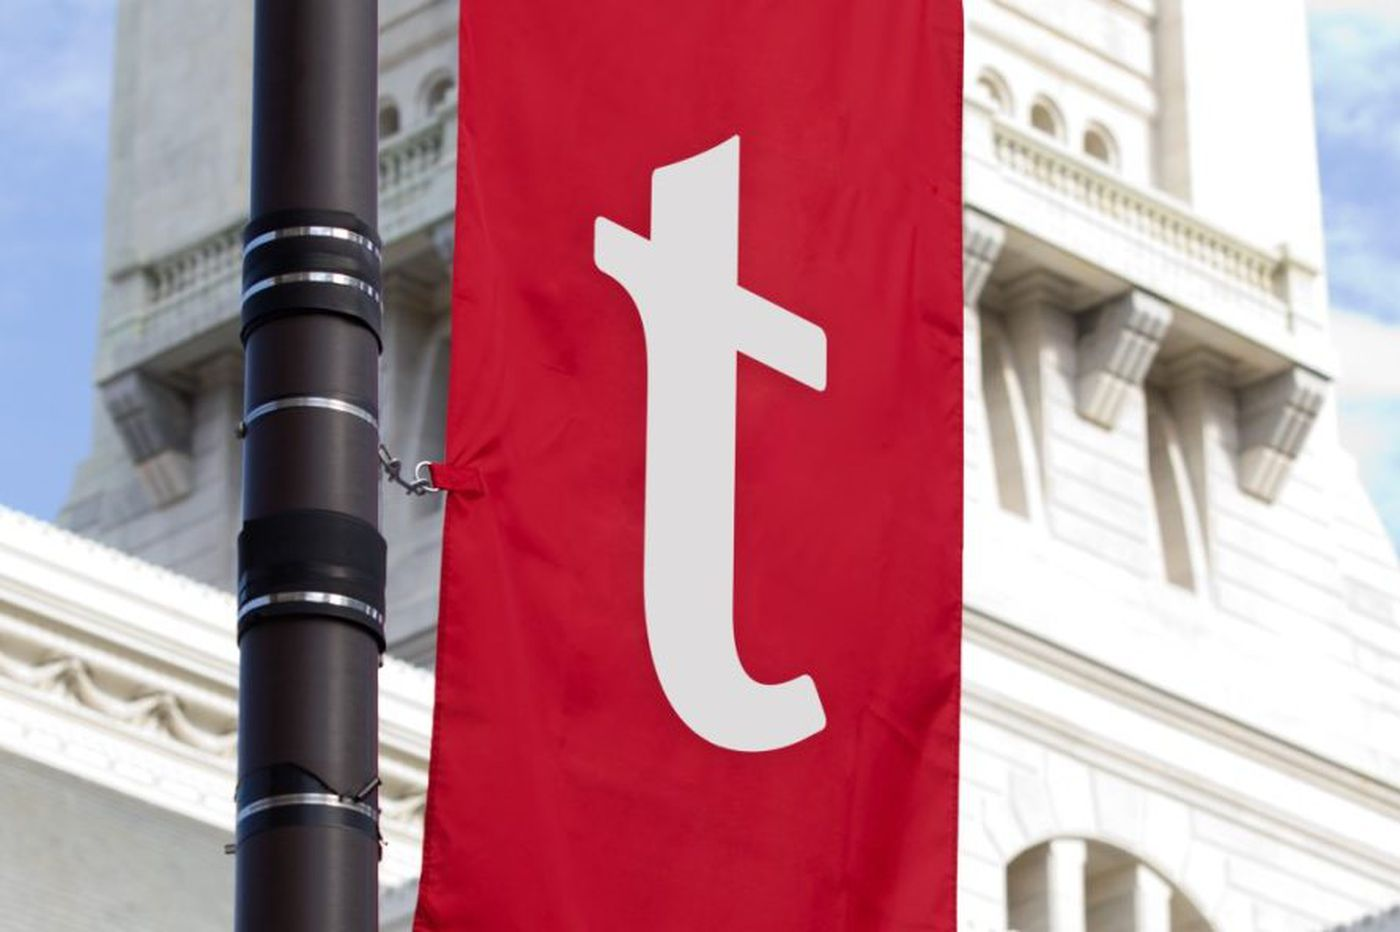 Temple pulls April Fools' joke with lowercase 't'